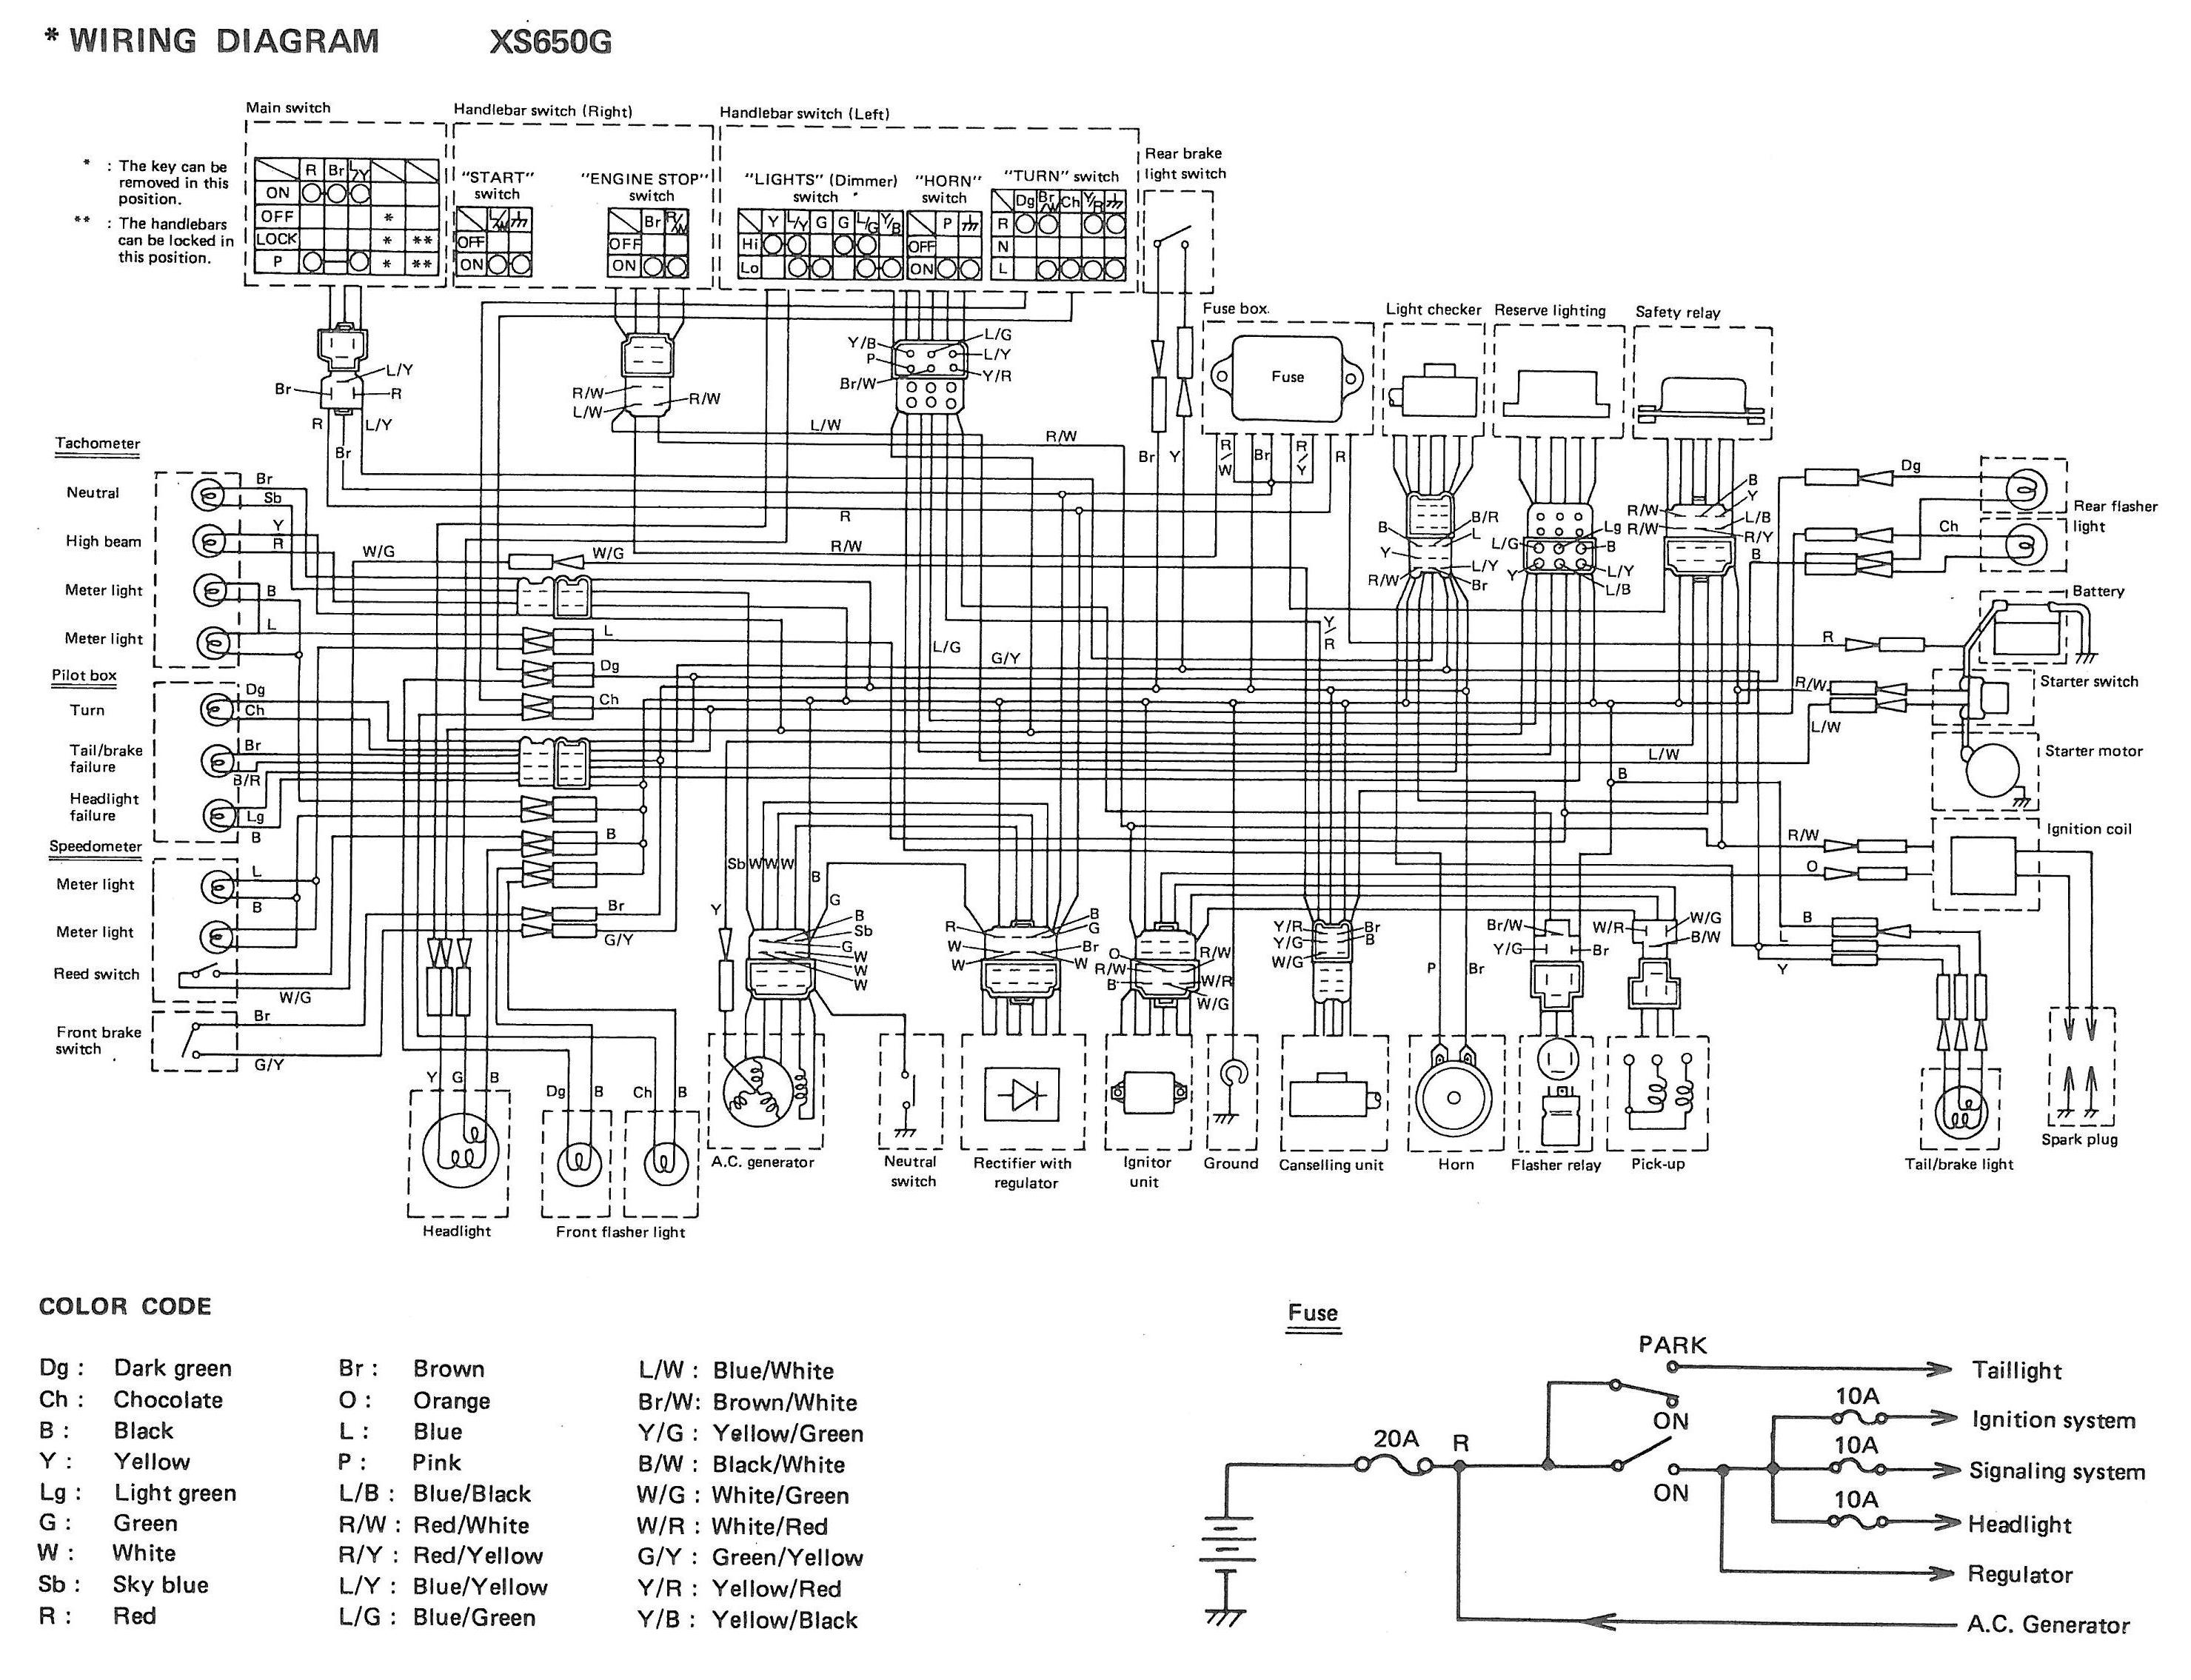 1977 Yamaha Xs 750 Wiring Diagram - Wiring Diagram Article on